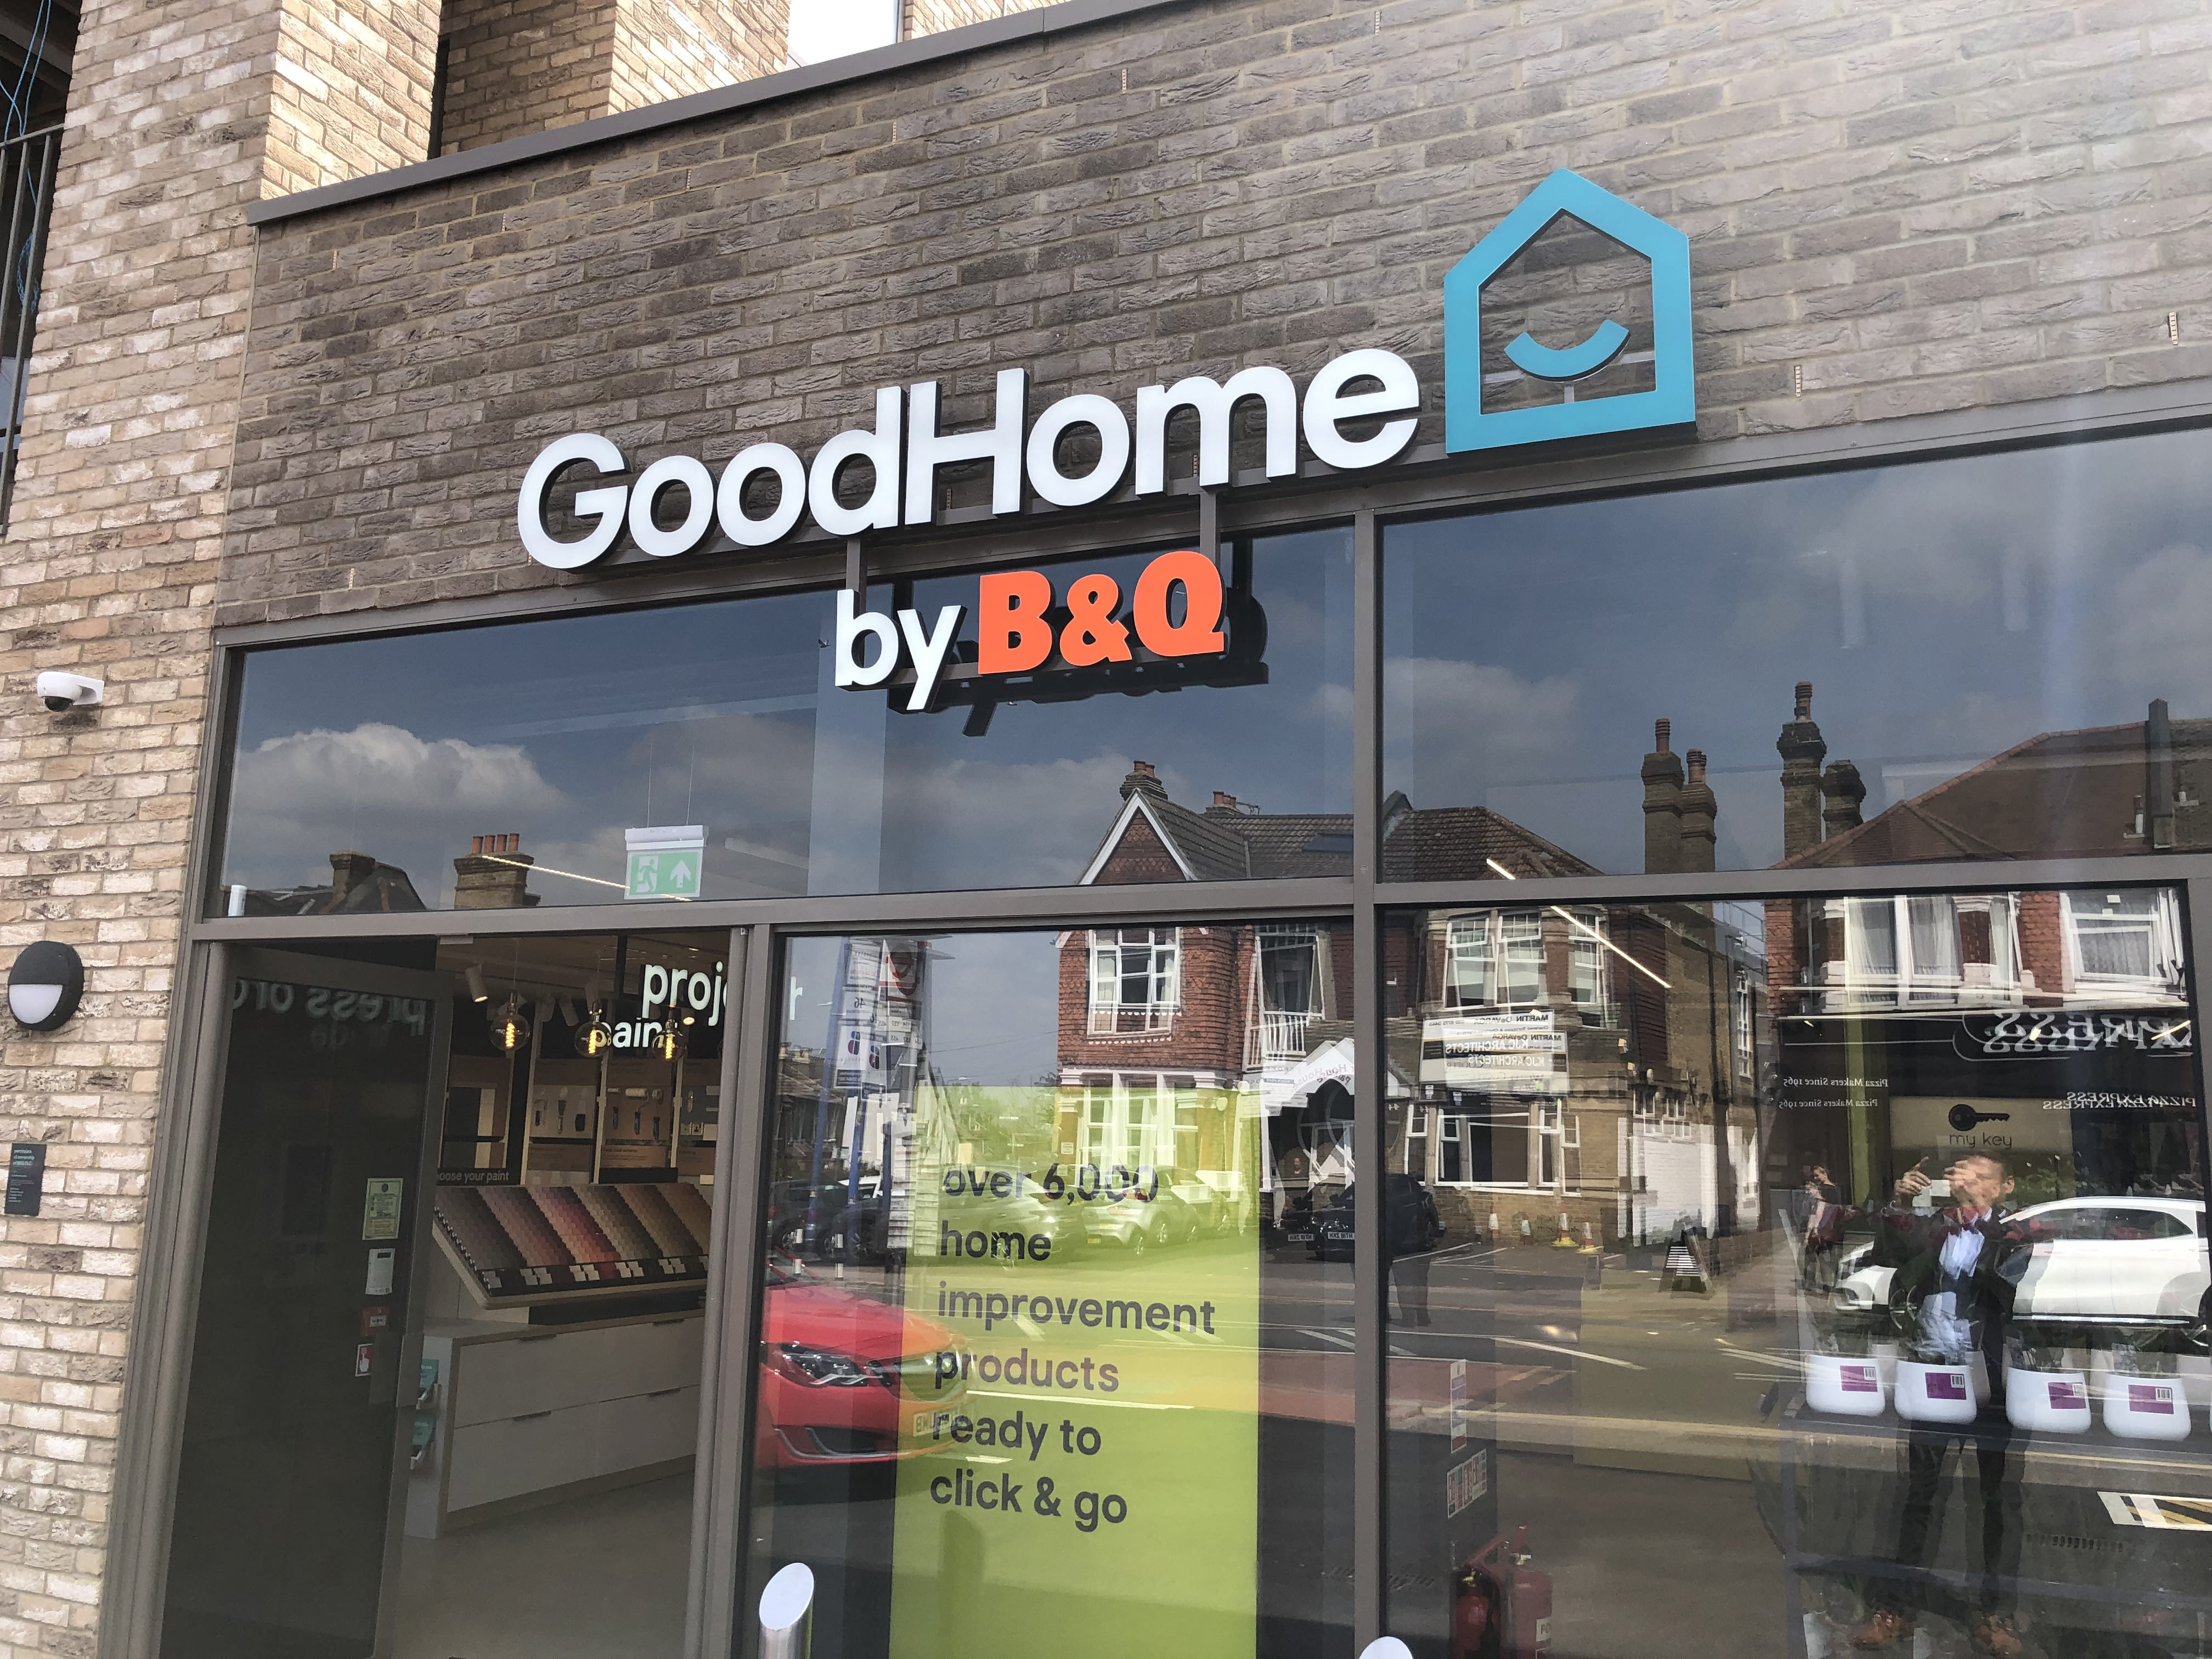 GoodHome by B&Q opens in Wallington